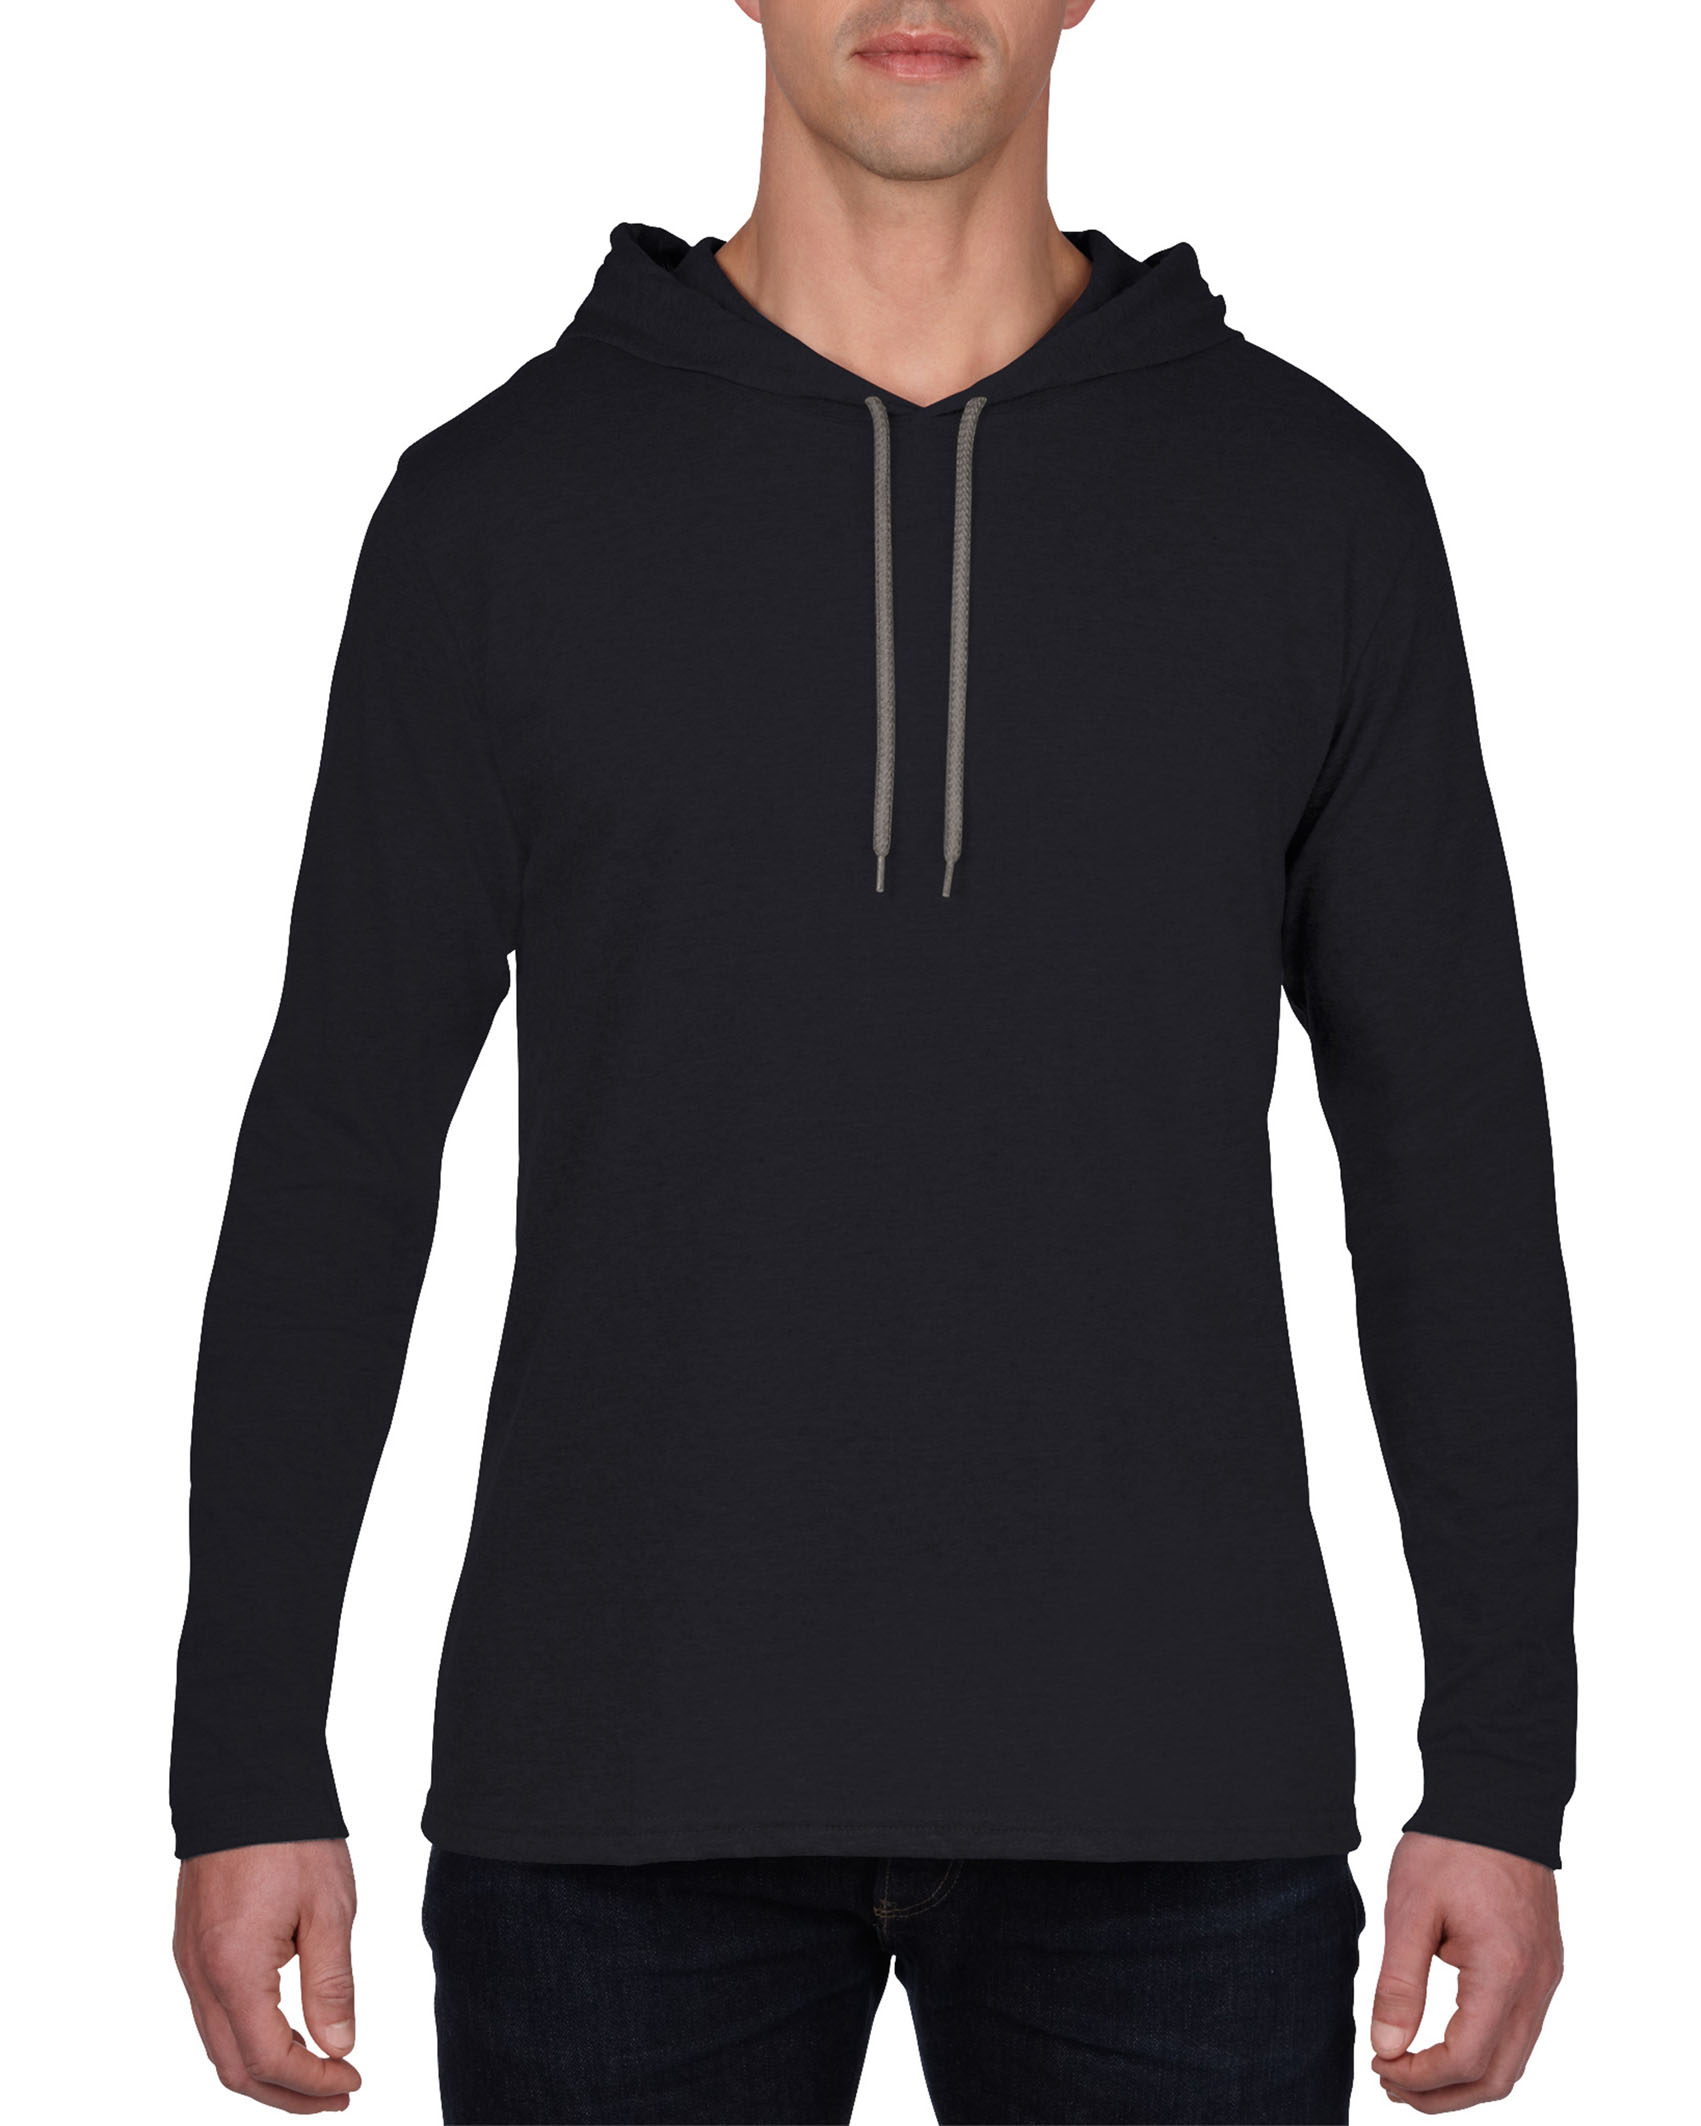 Anvil T-shirt Hooded Lightweight LS for him